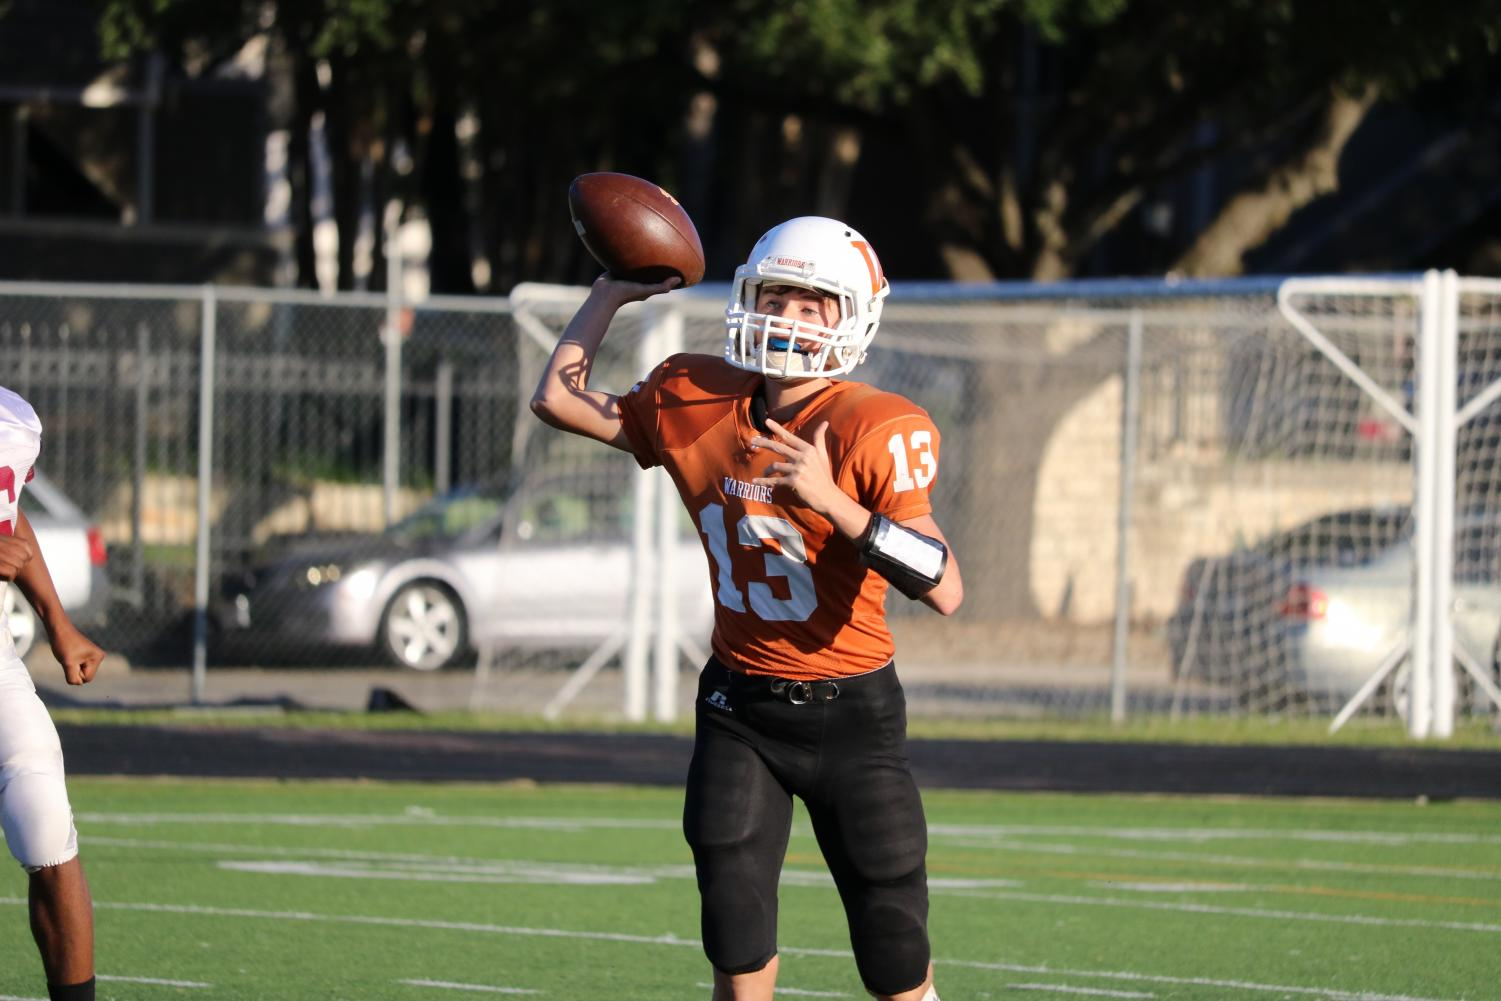 Reece+Frank+%2721%2C+throws+the+ball+to+a+wide+receiver.+